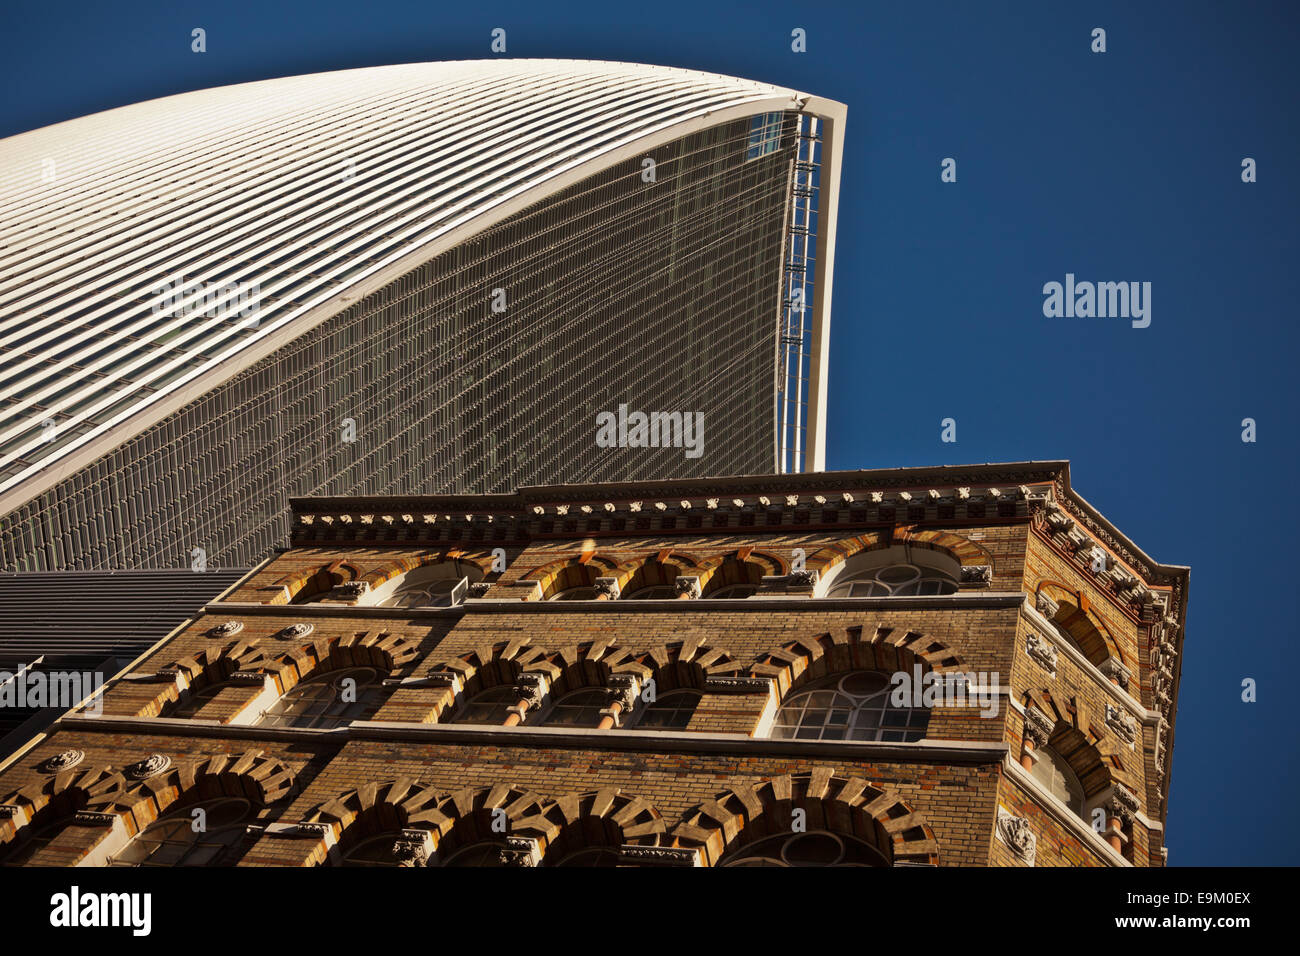 20 Fenchurch St, London, the walkie talkie buliding next to an older building - Stock Image